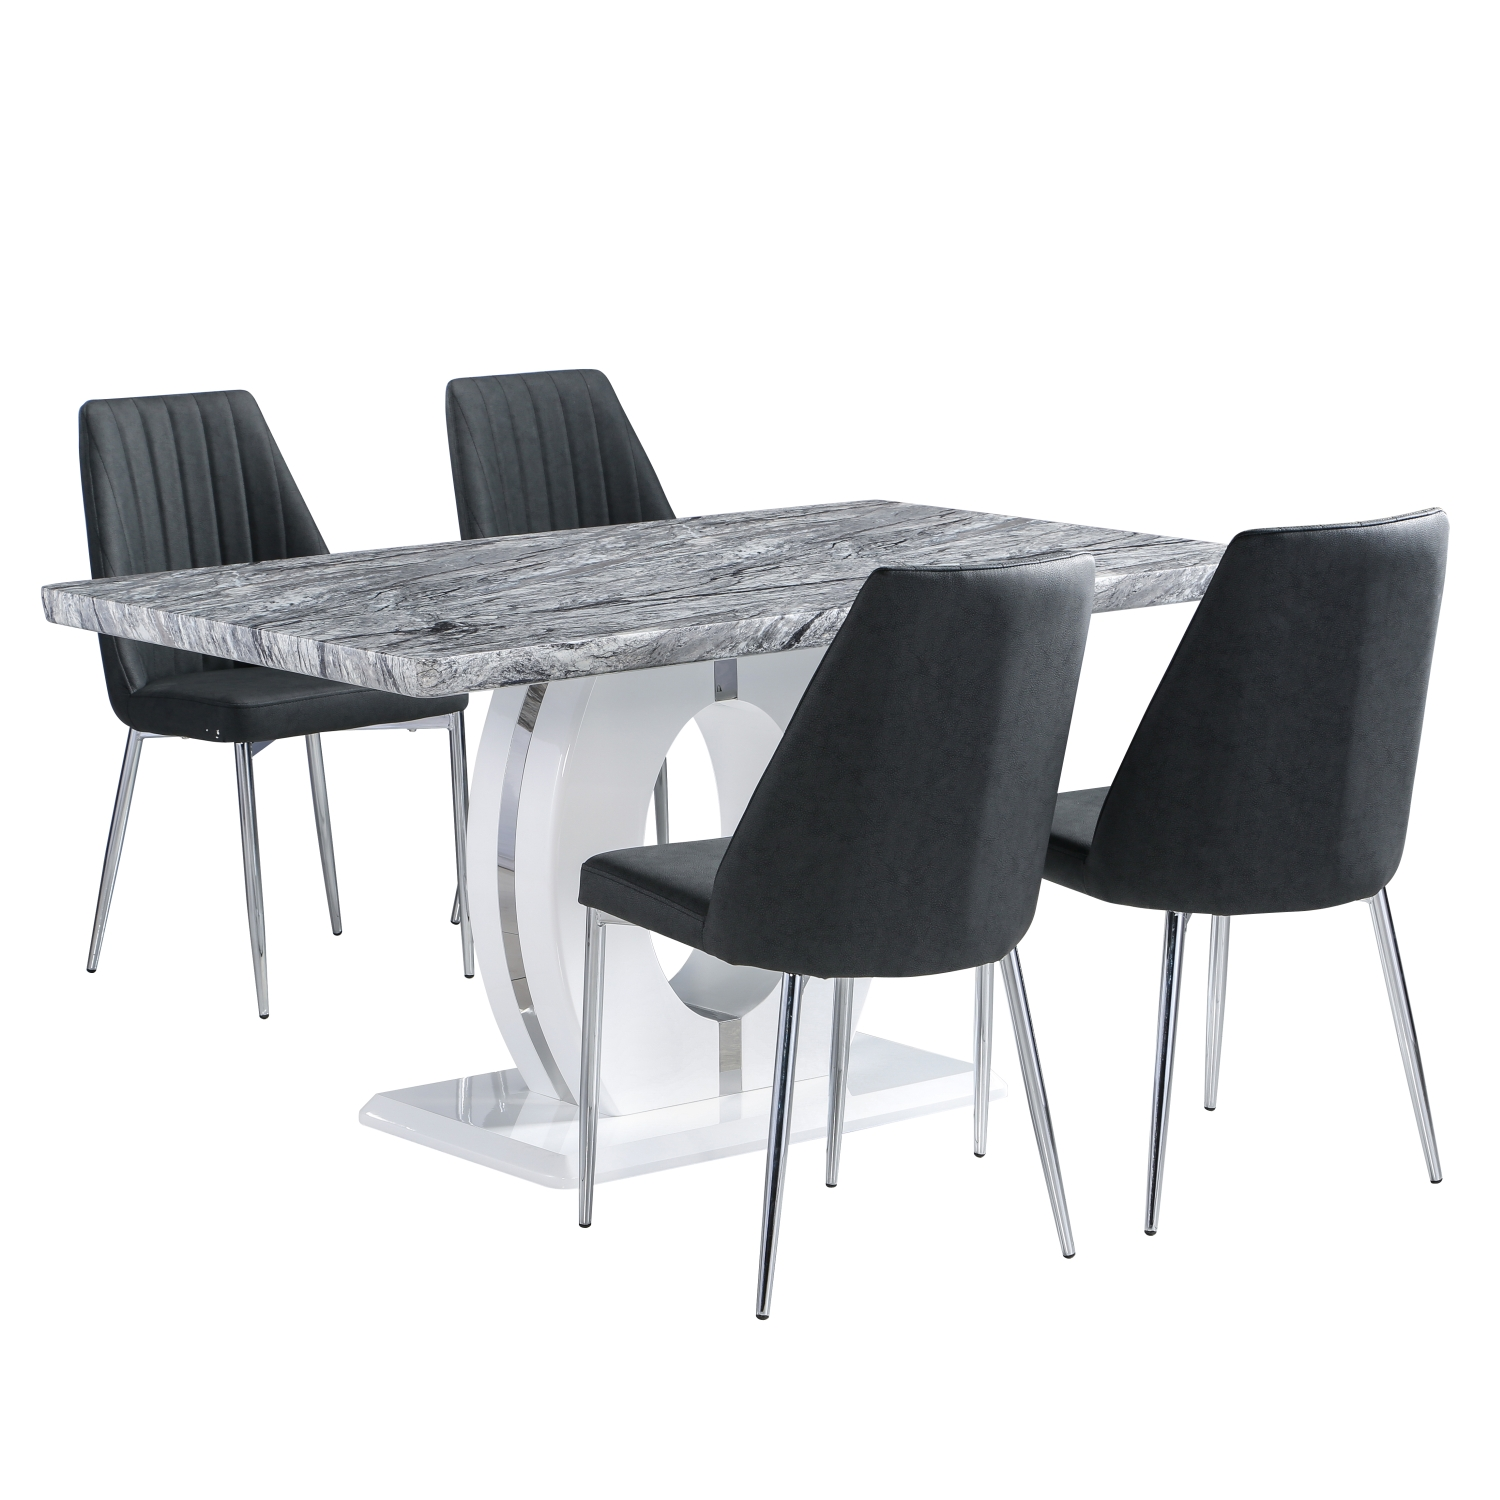 Marble Top Effect Dining Table with 4 Odeon Grey dining Chairs